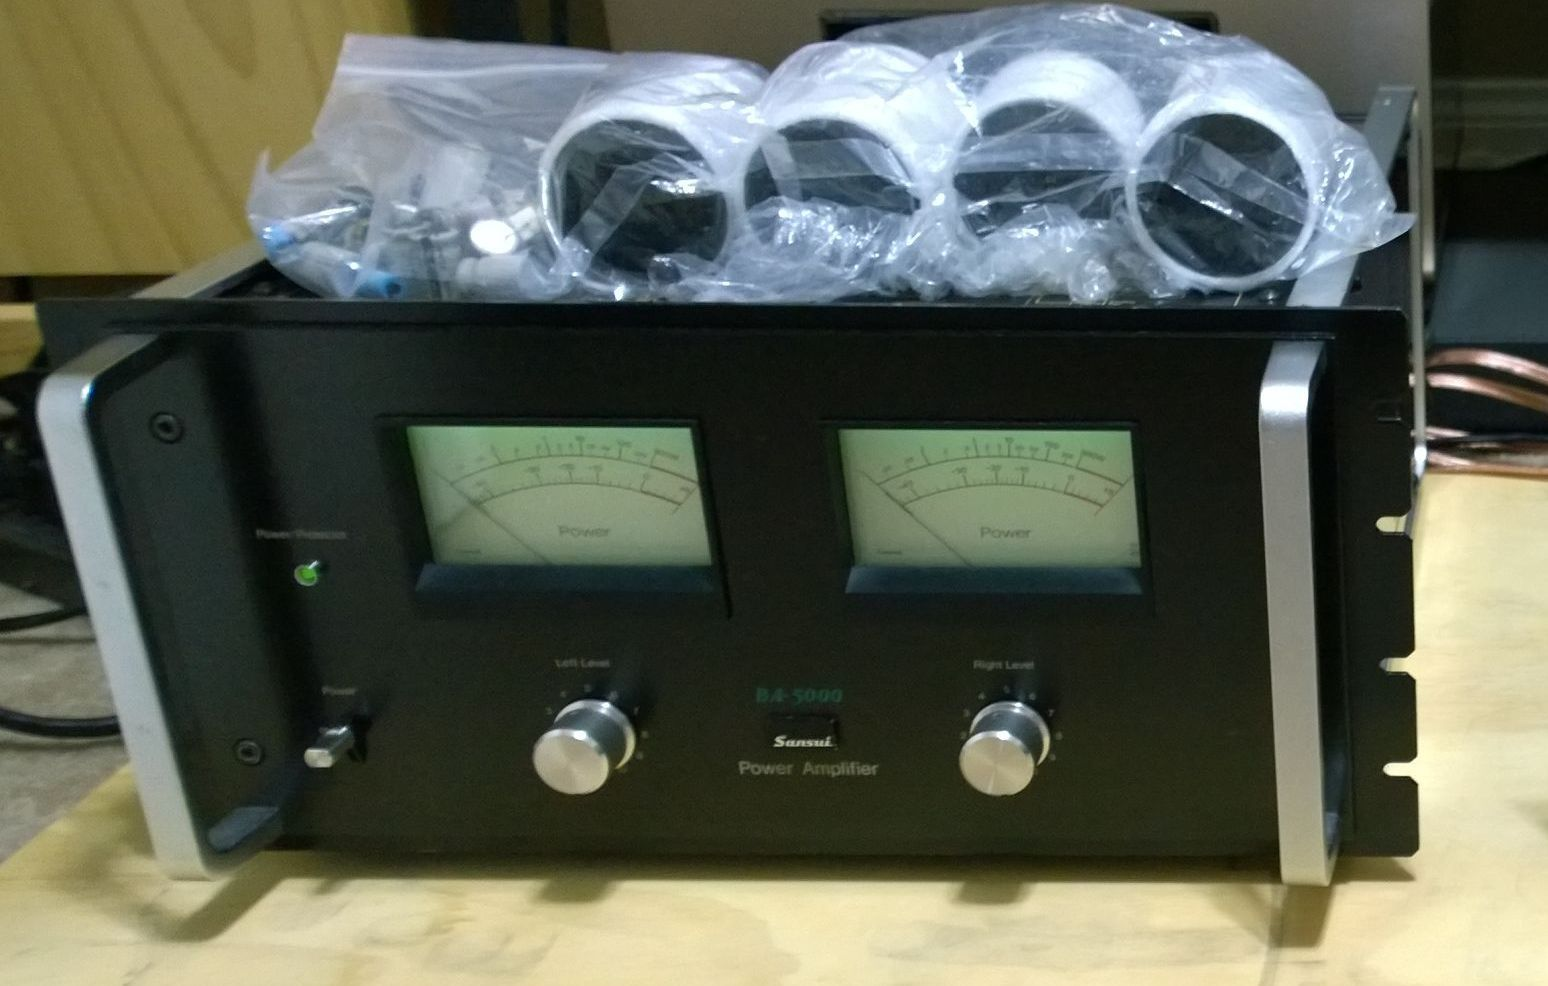 One Sansui BA-5000 Power Amplifier Fully Serviced Recapped in Awesome Condition